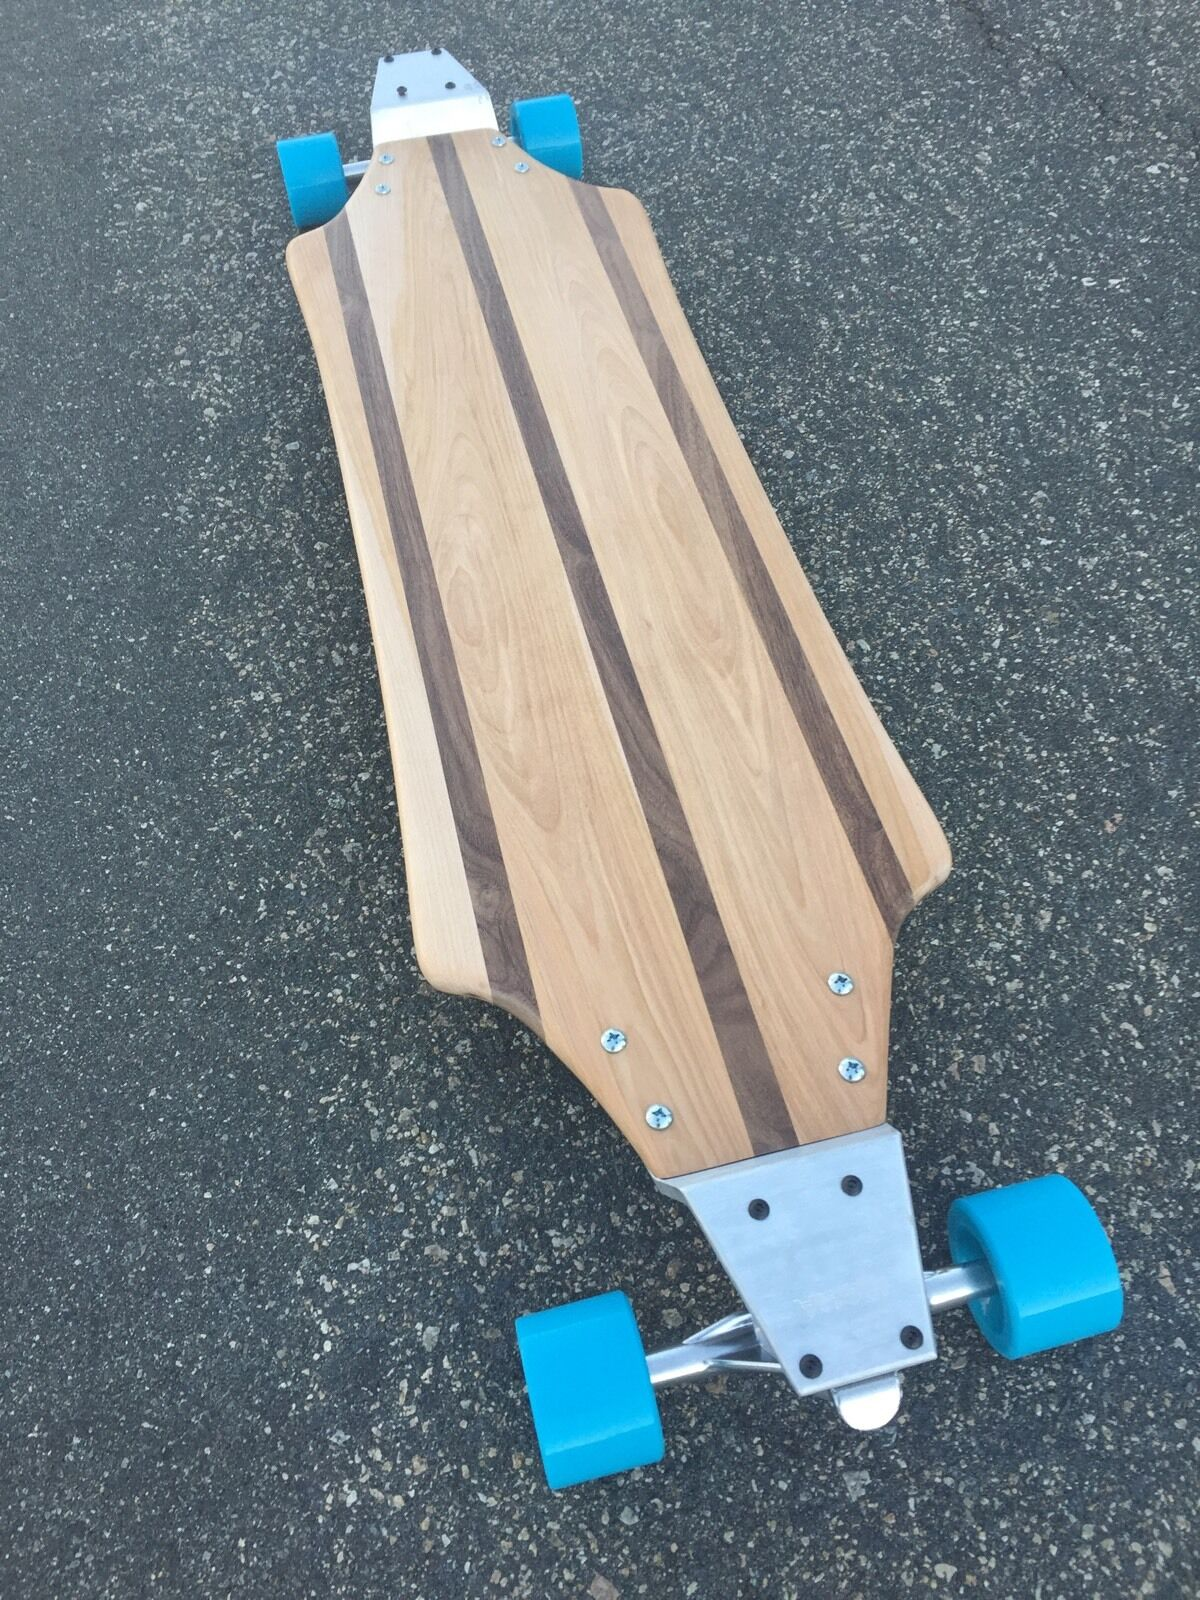 Longboard with Drop Plates made of Solid Wood - Redondo